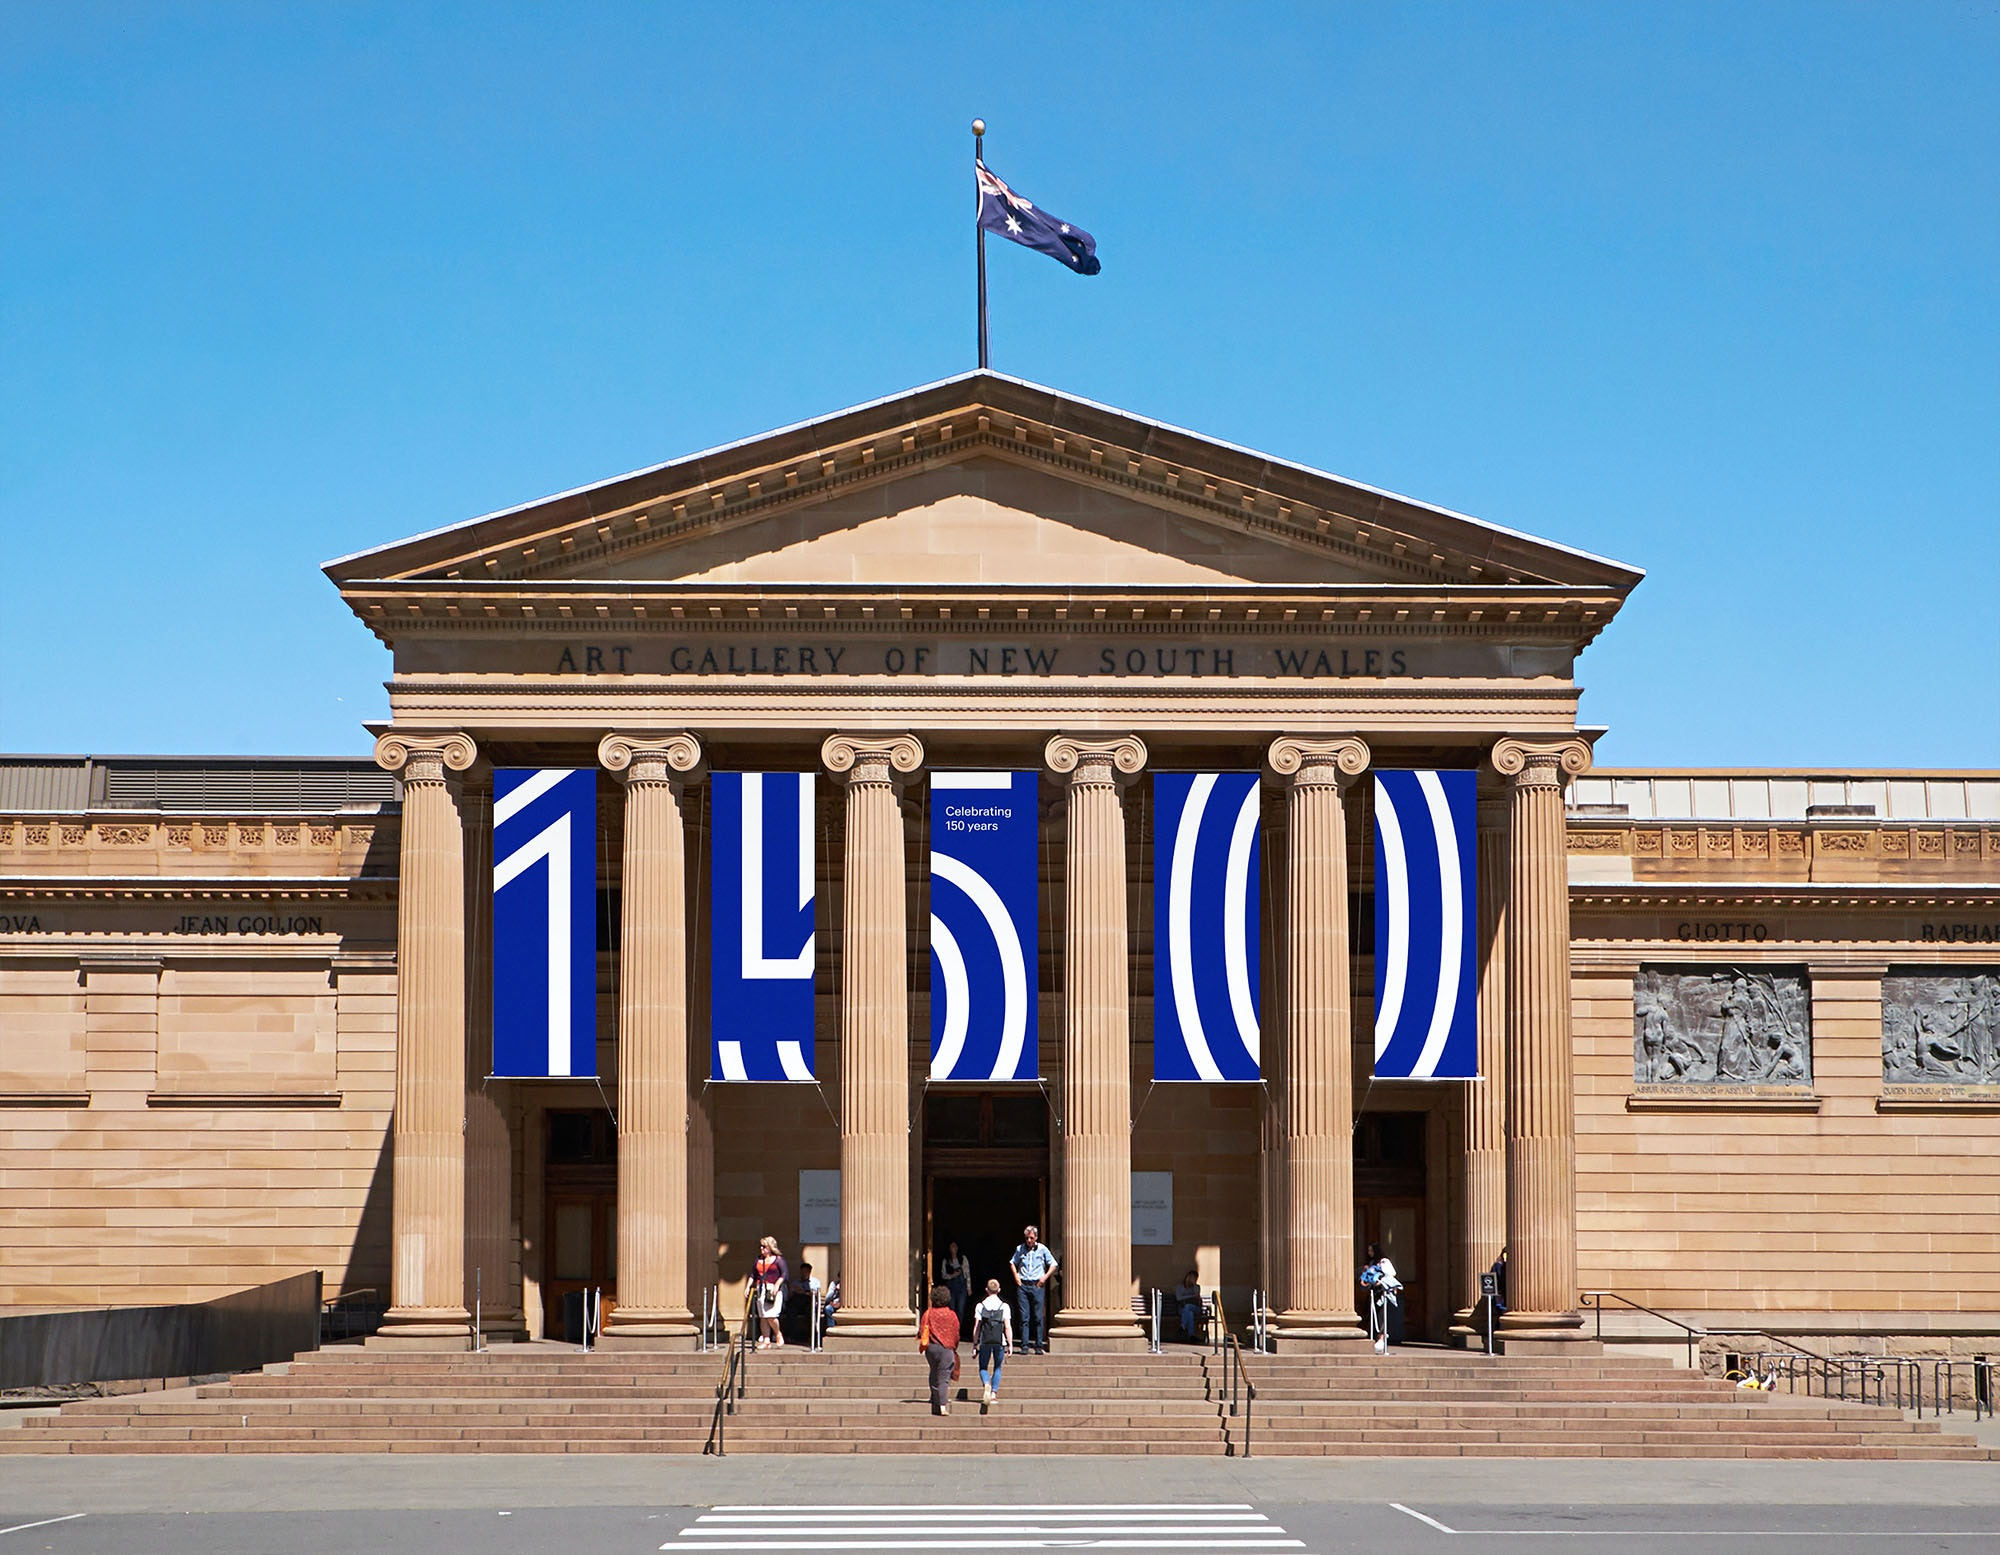 The Art Gallery of NSW 150th anniversary banners